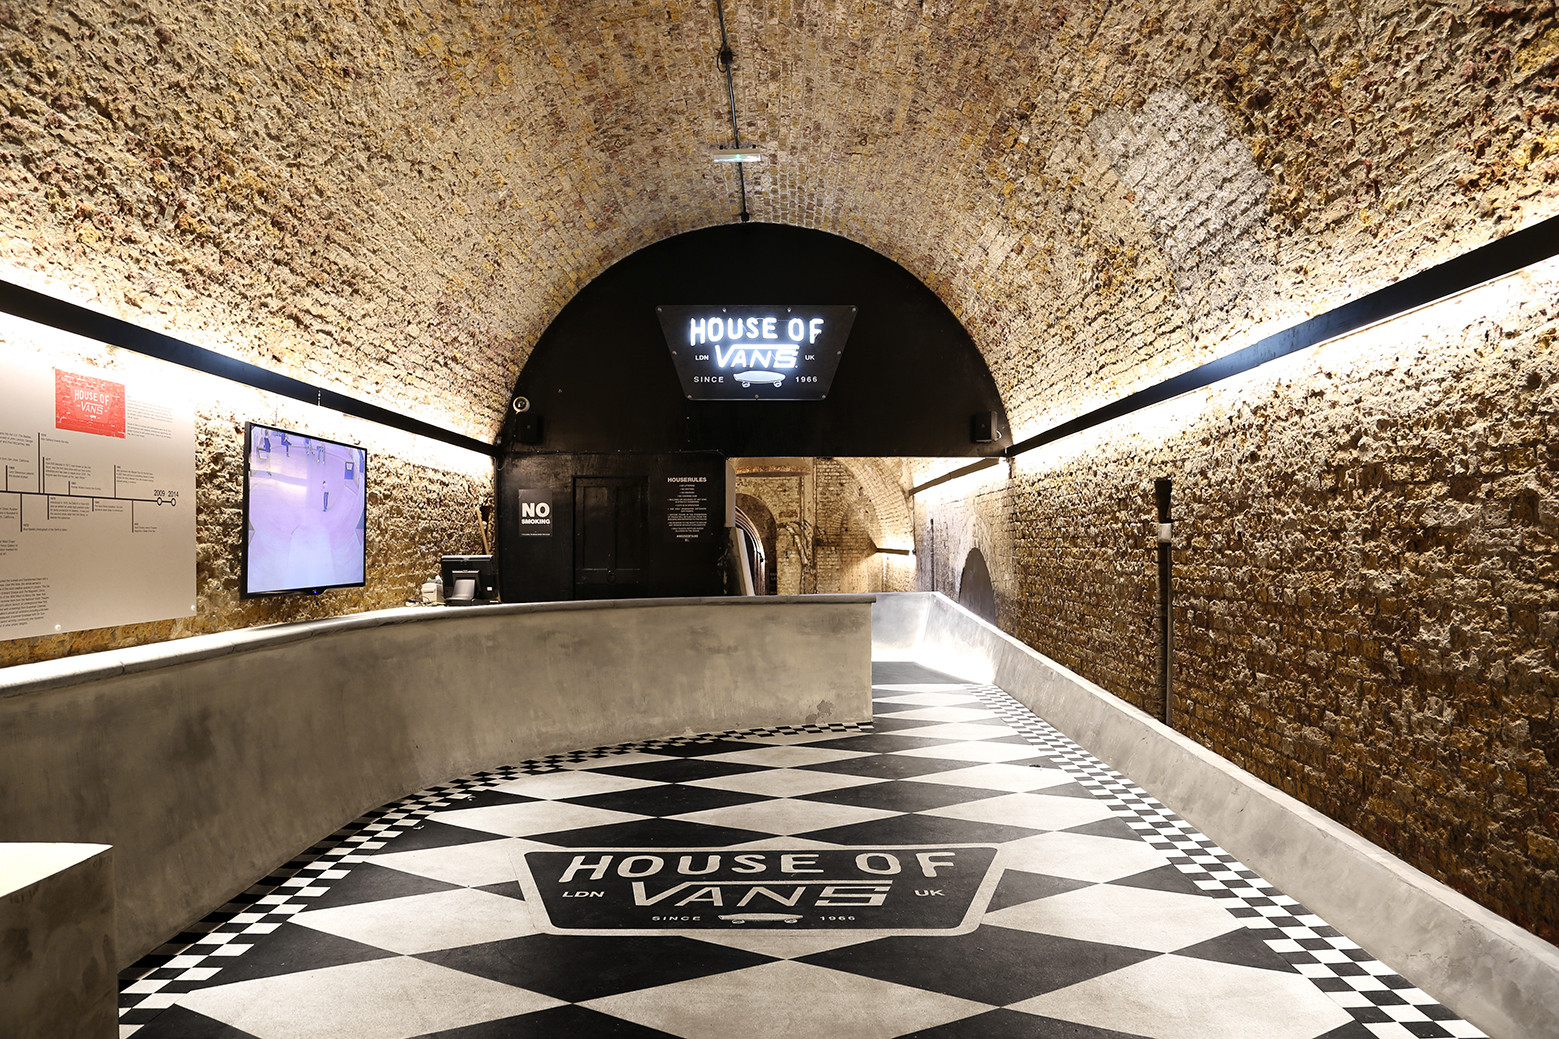 House of Vans London / Tim Greatrex, Courtesy of Tim Greatrex